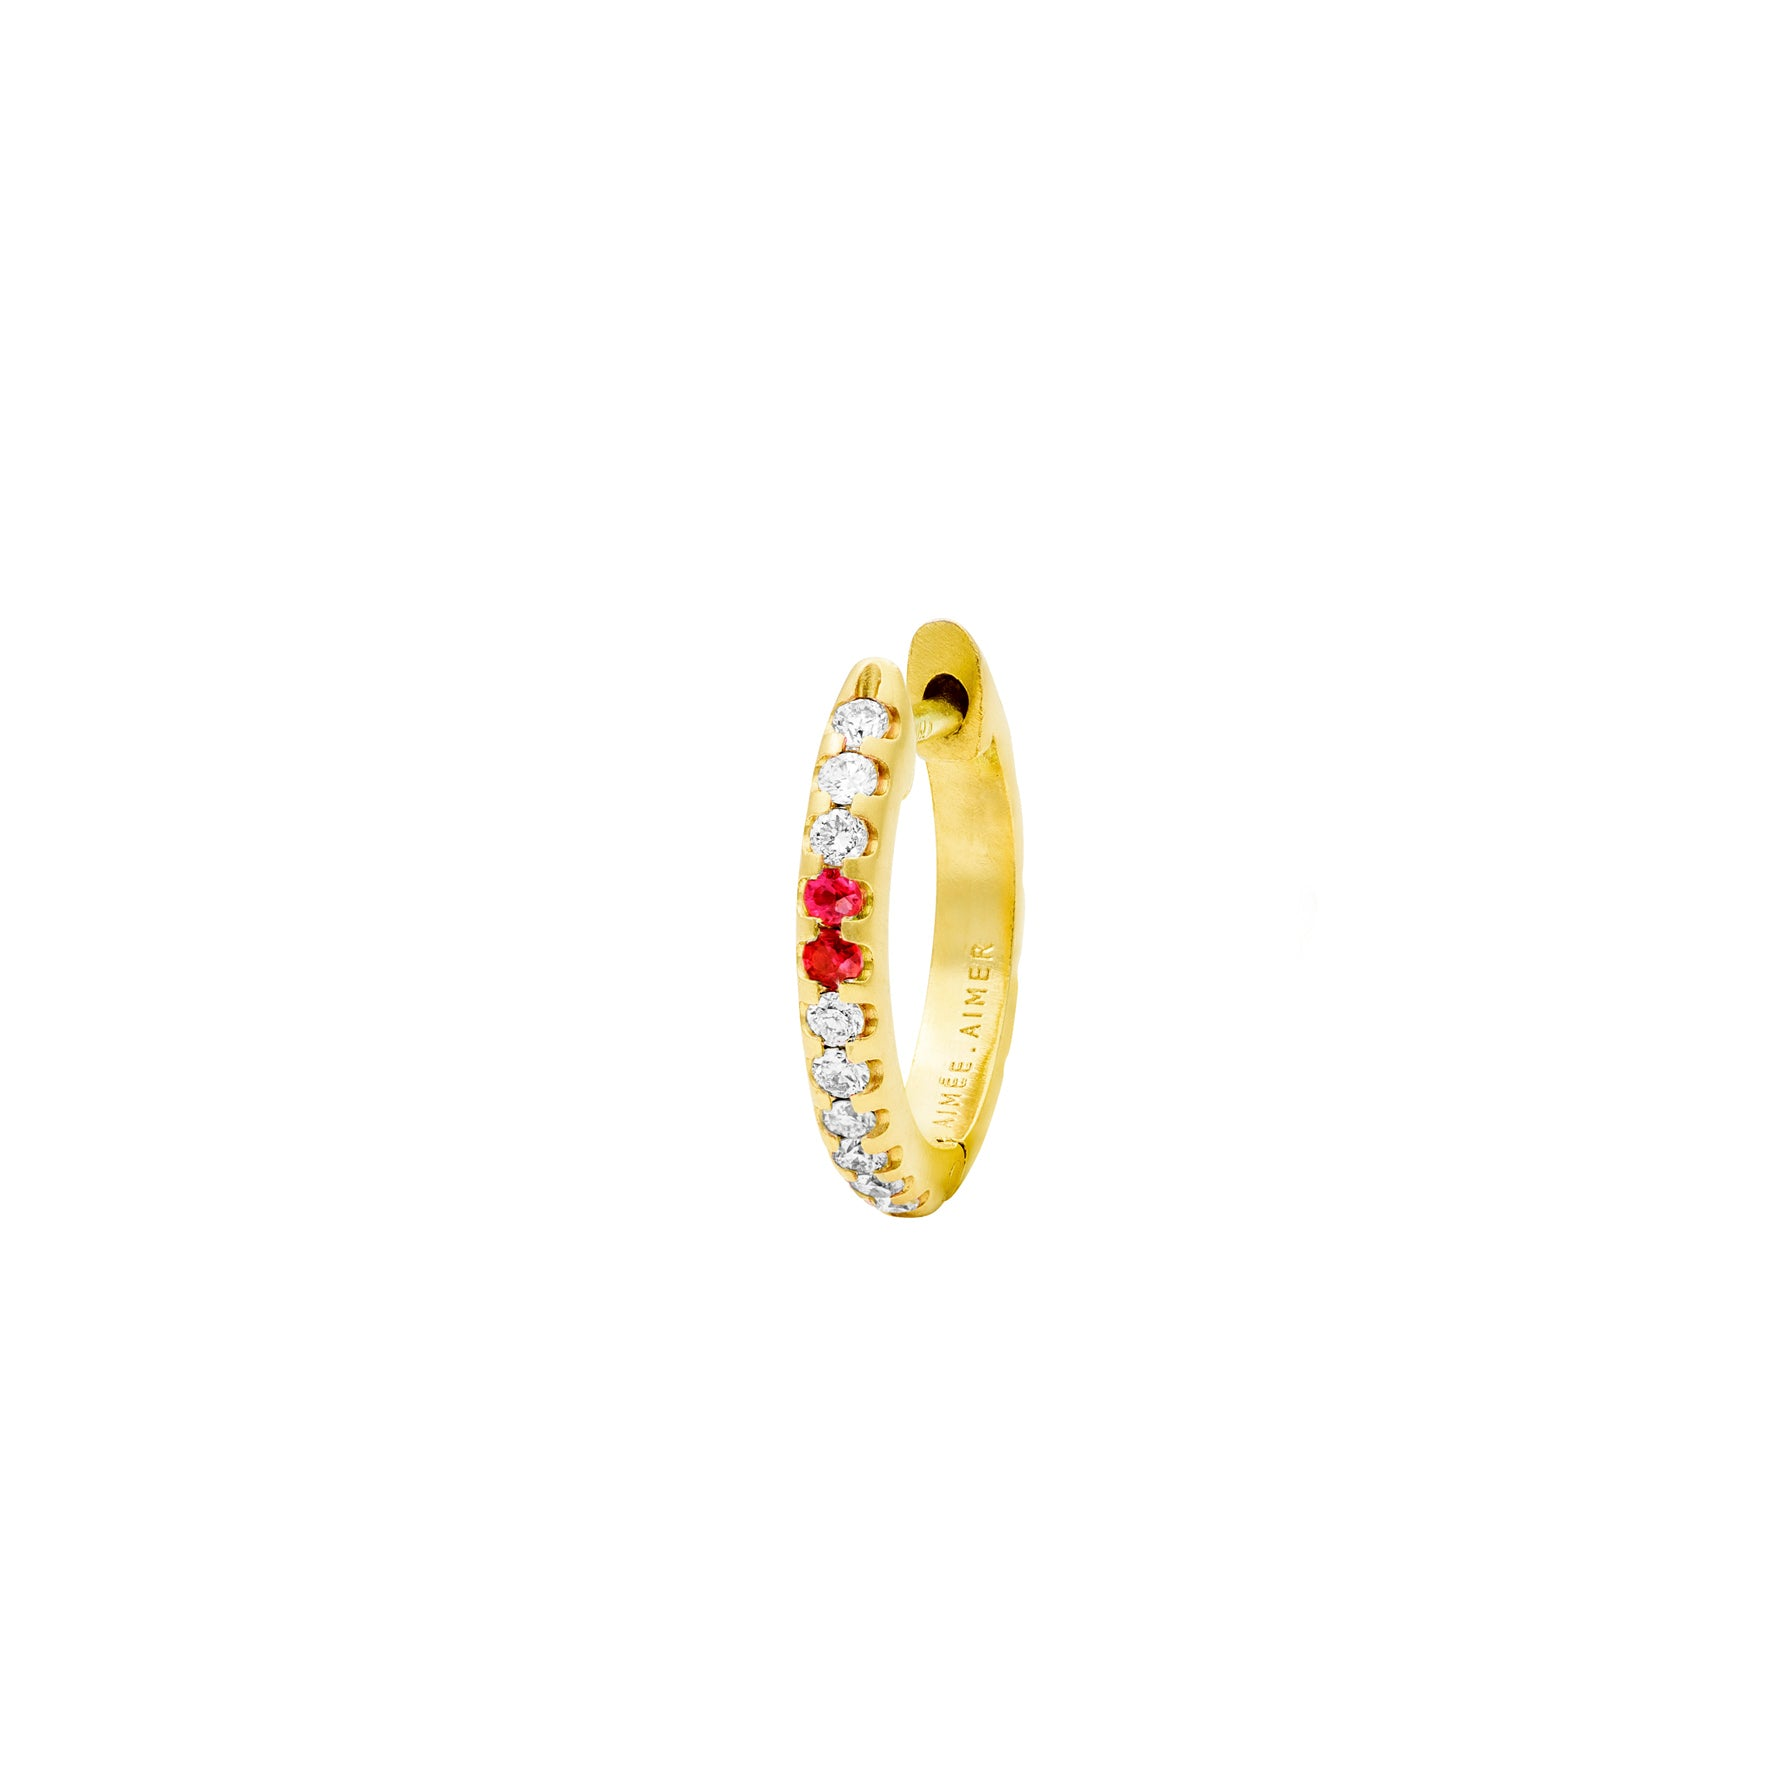 Créole Spicy Or jaune Diamants et Rubis